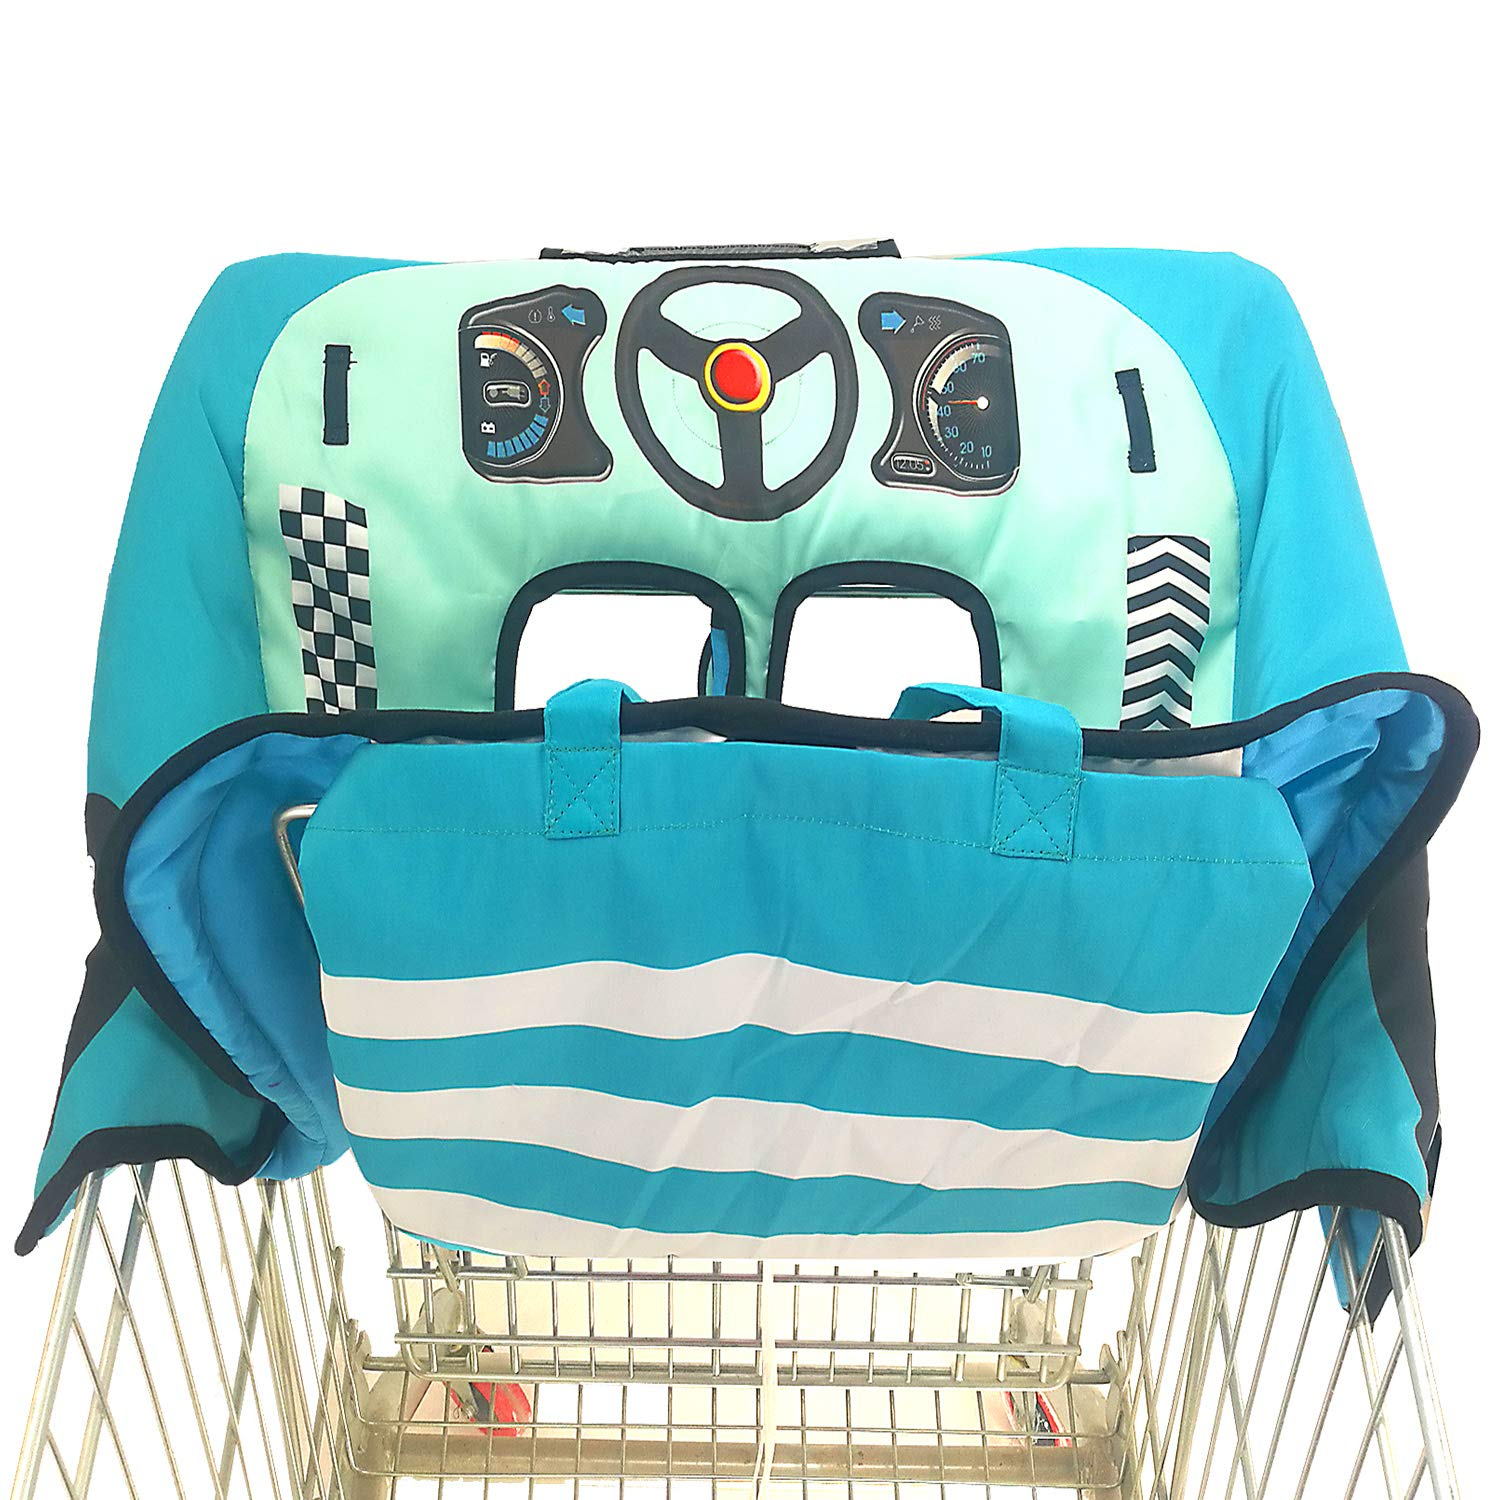 Extra Padded, Shopping Cart Cover and High Chair Cover for Baby,Provides Protection, Great Quality for Comfort by SLW (Blue)